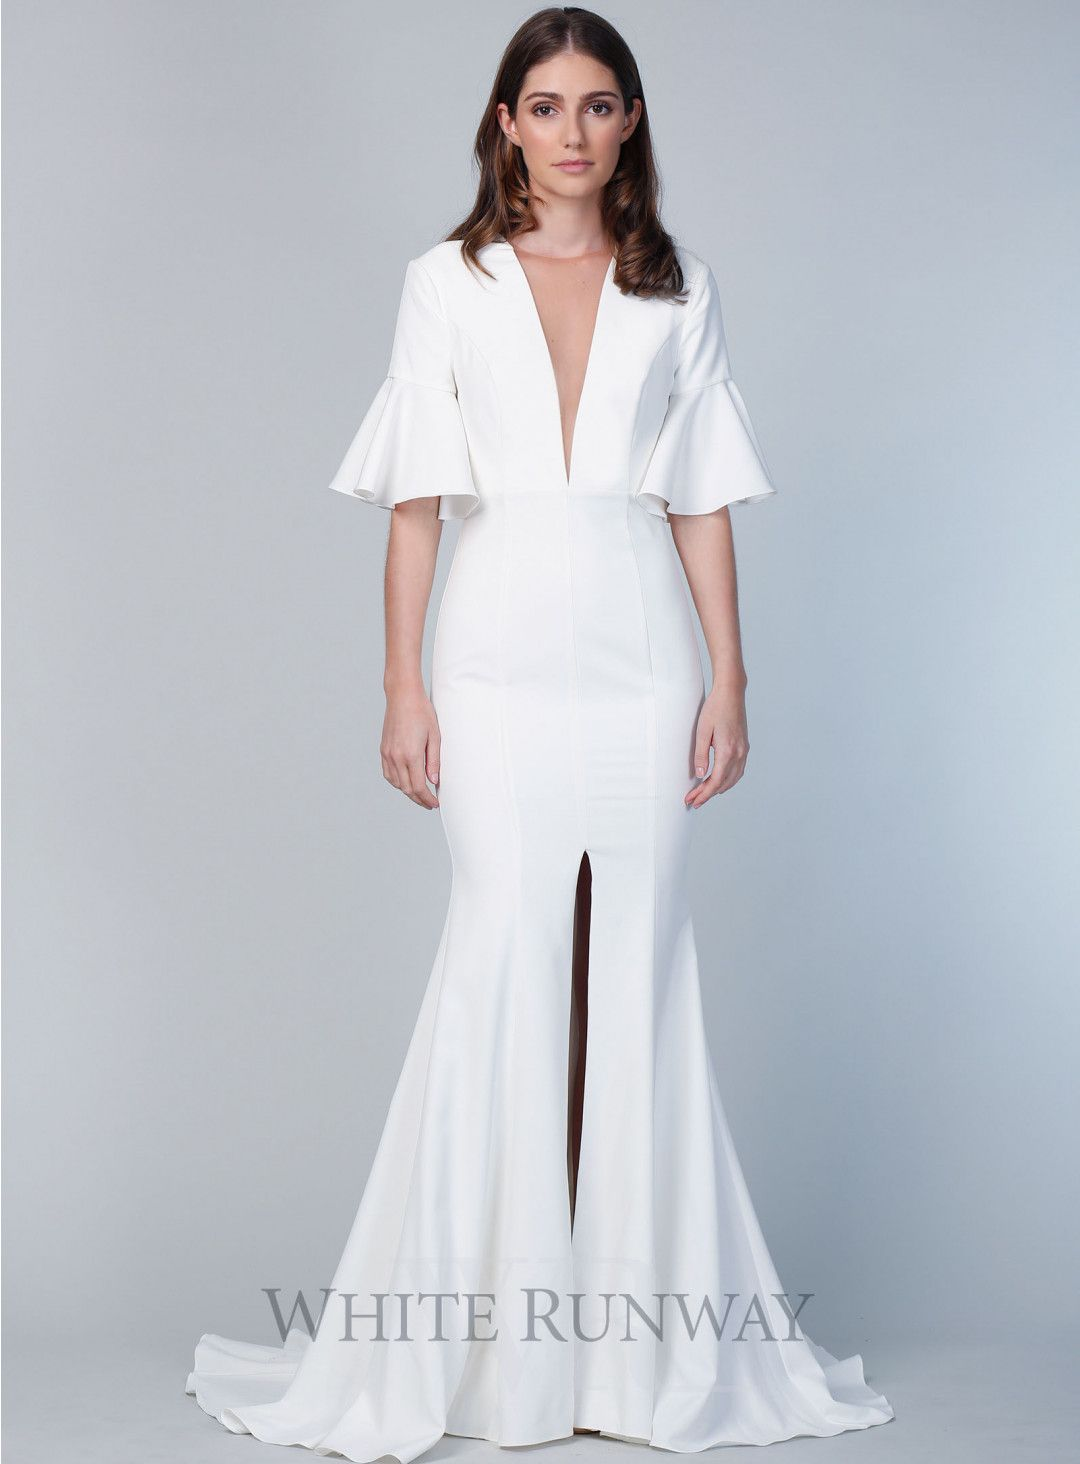 Martinique gown a chic full length gown by sofia cali a high neck